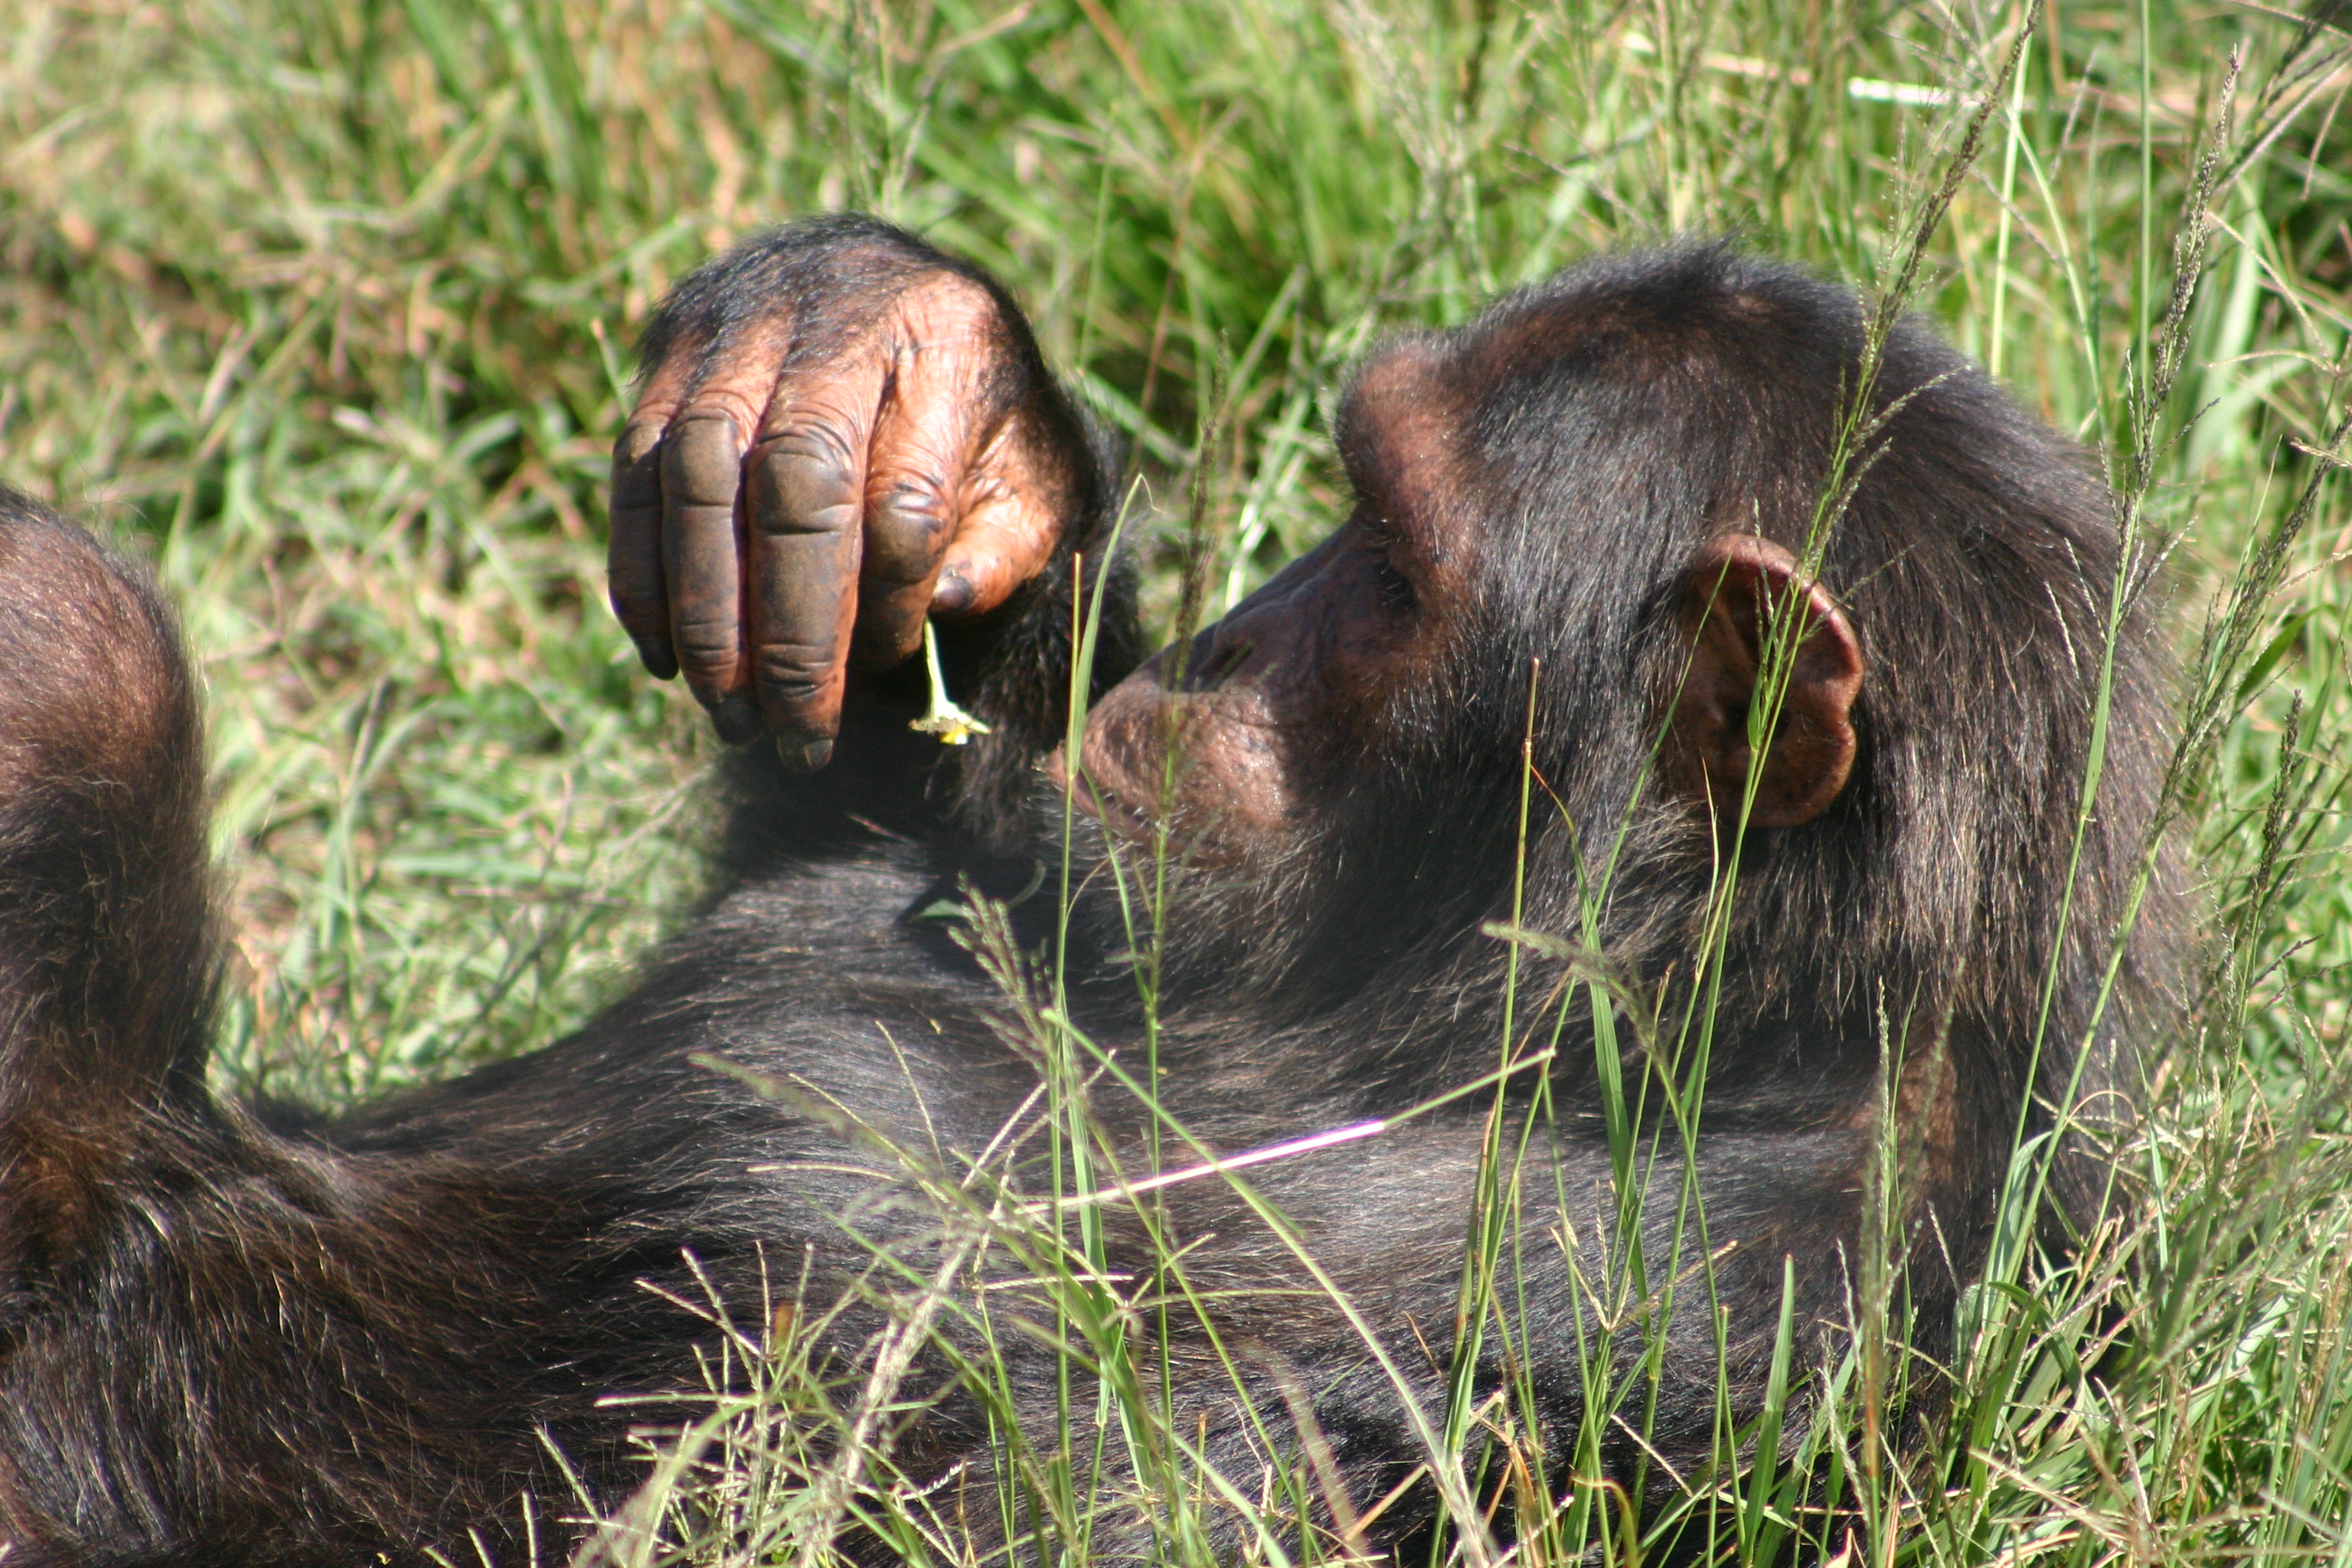 Chimpanzee playing with a flower